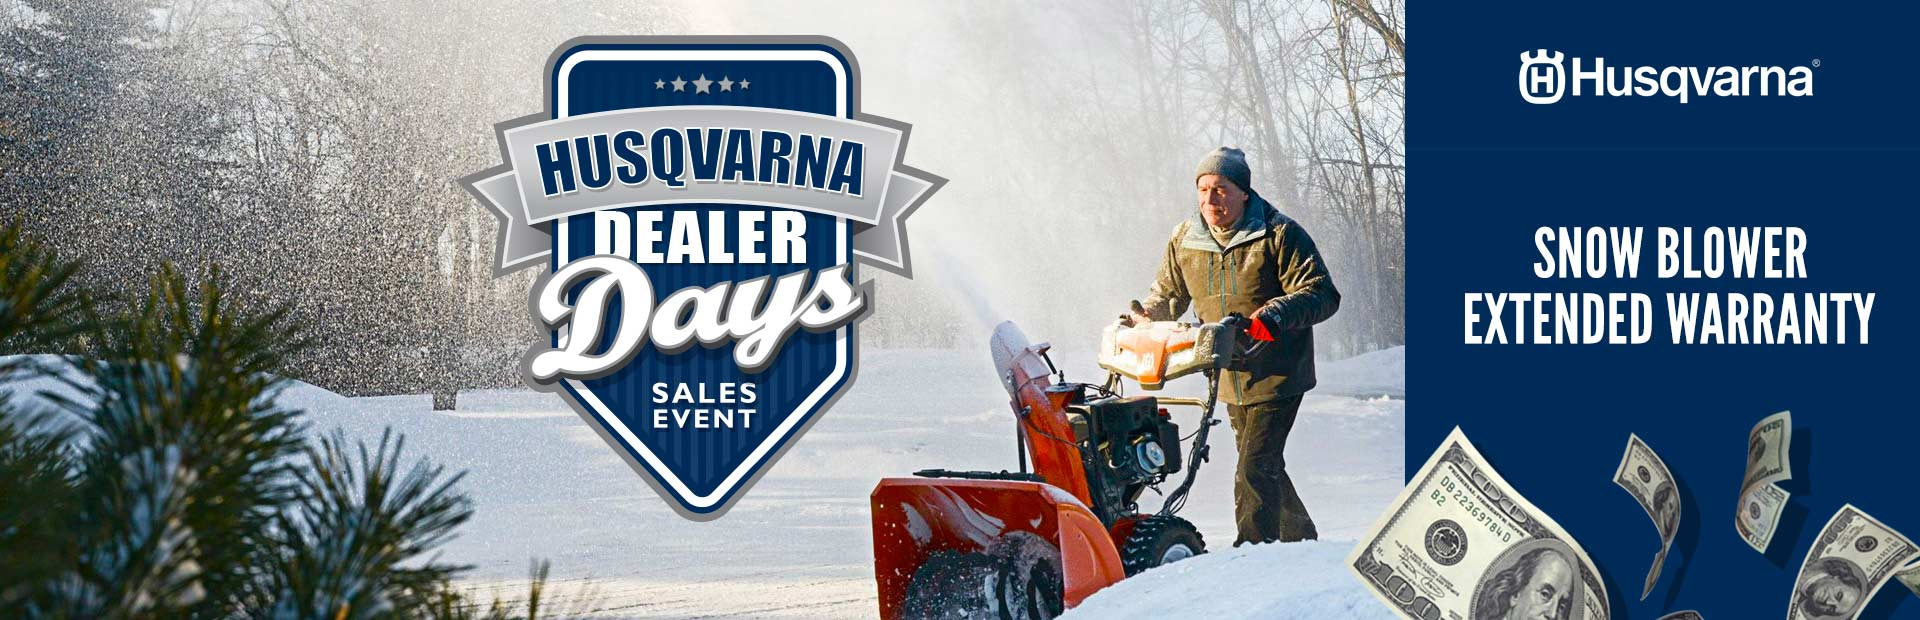 Husqvarna: Snow Blower Extended Warranty